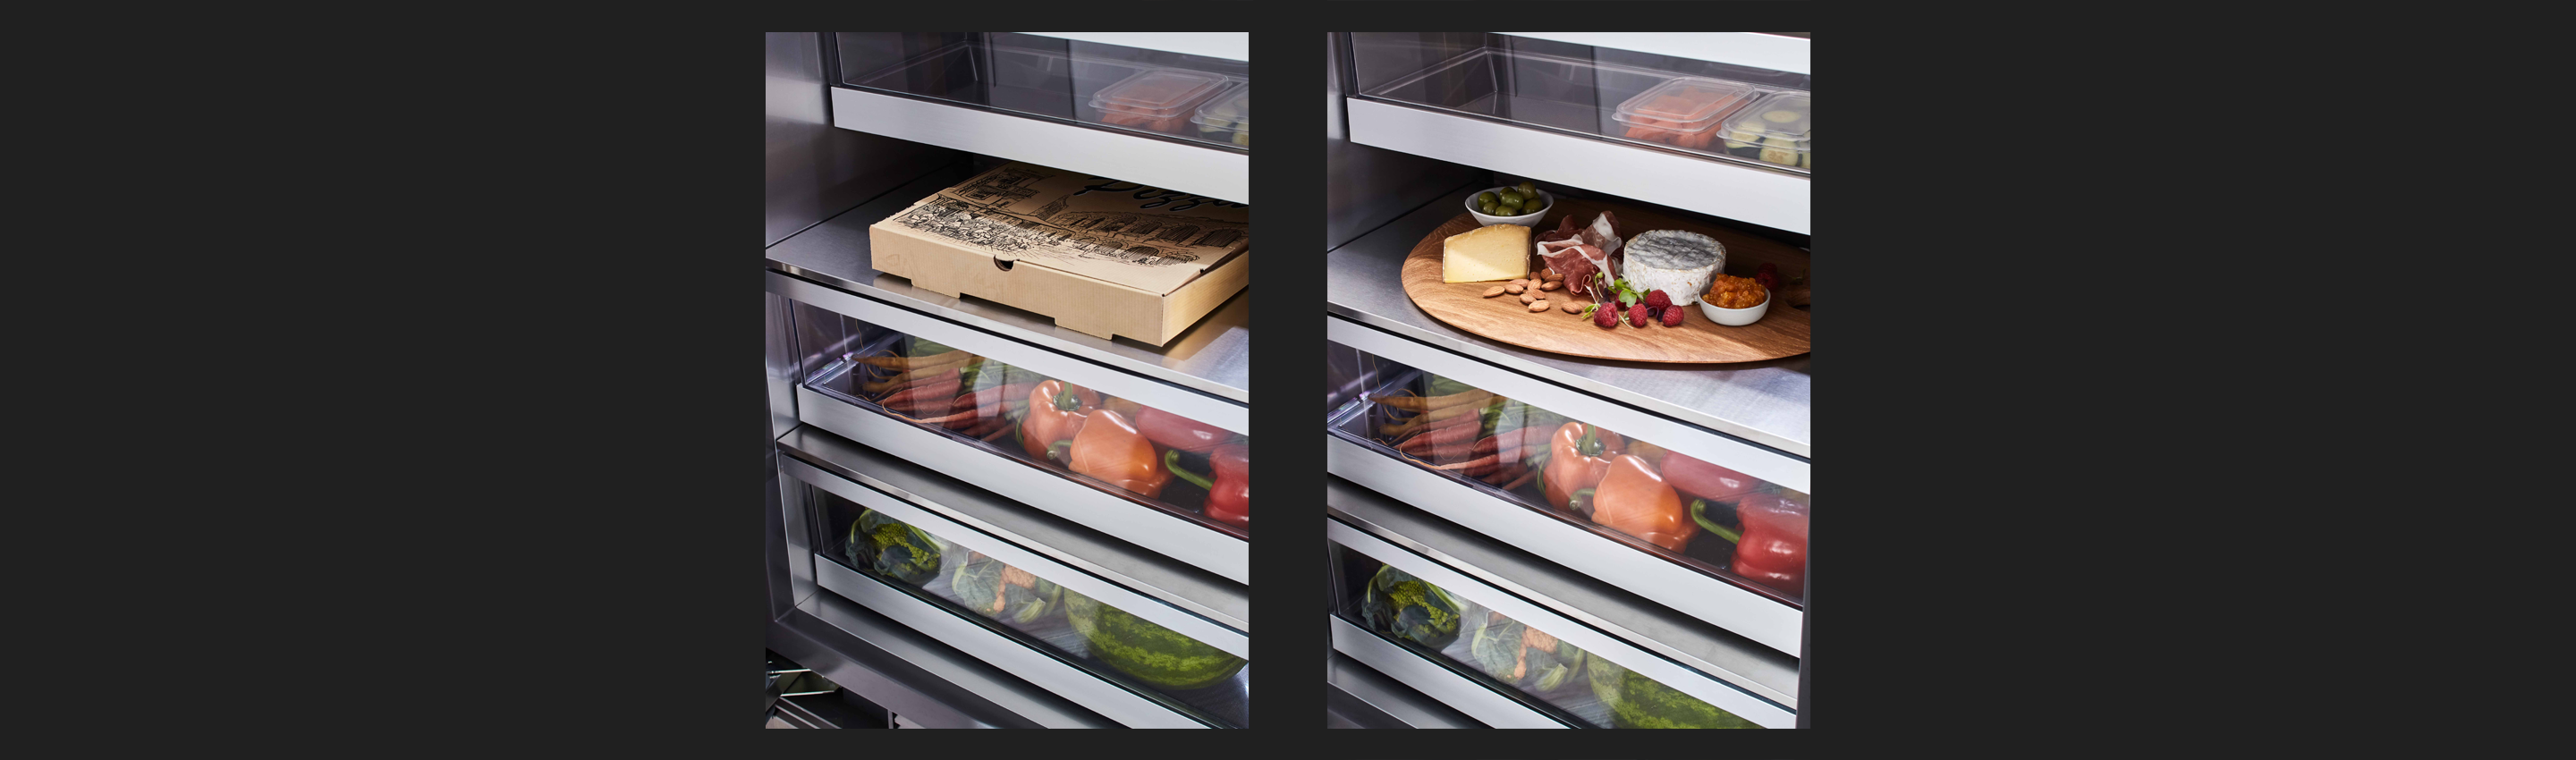 "36"" Built-in French Door Refrigerator 